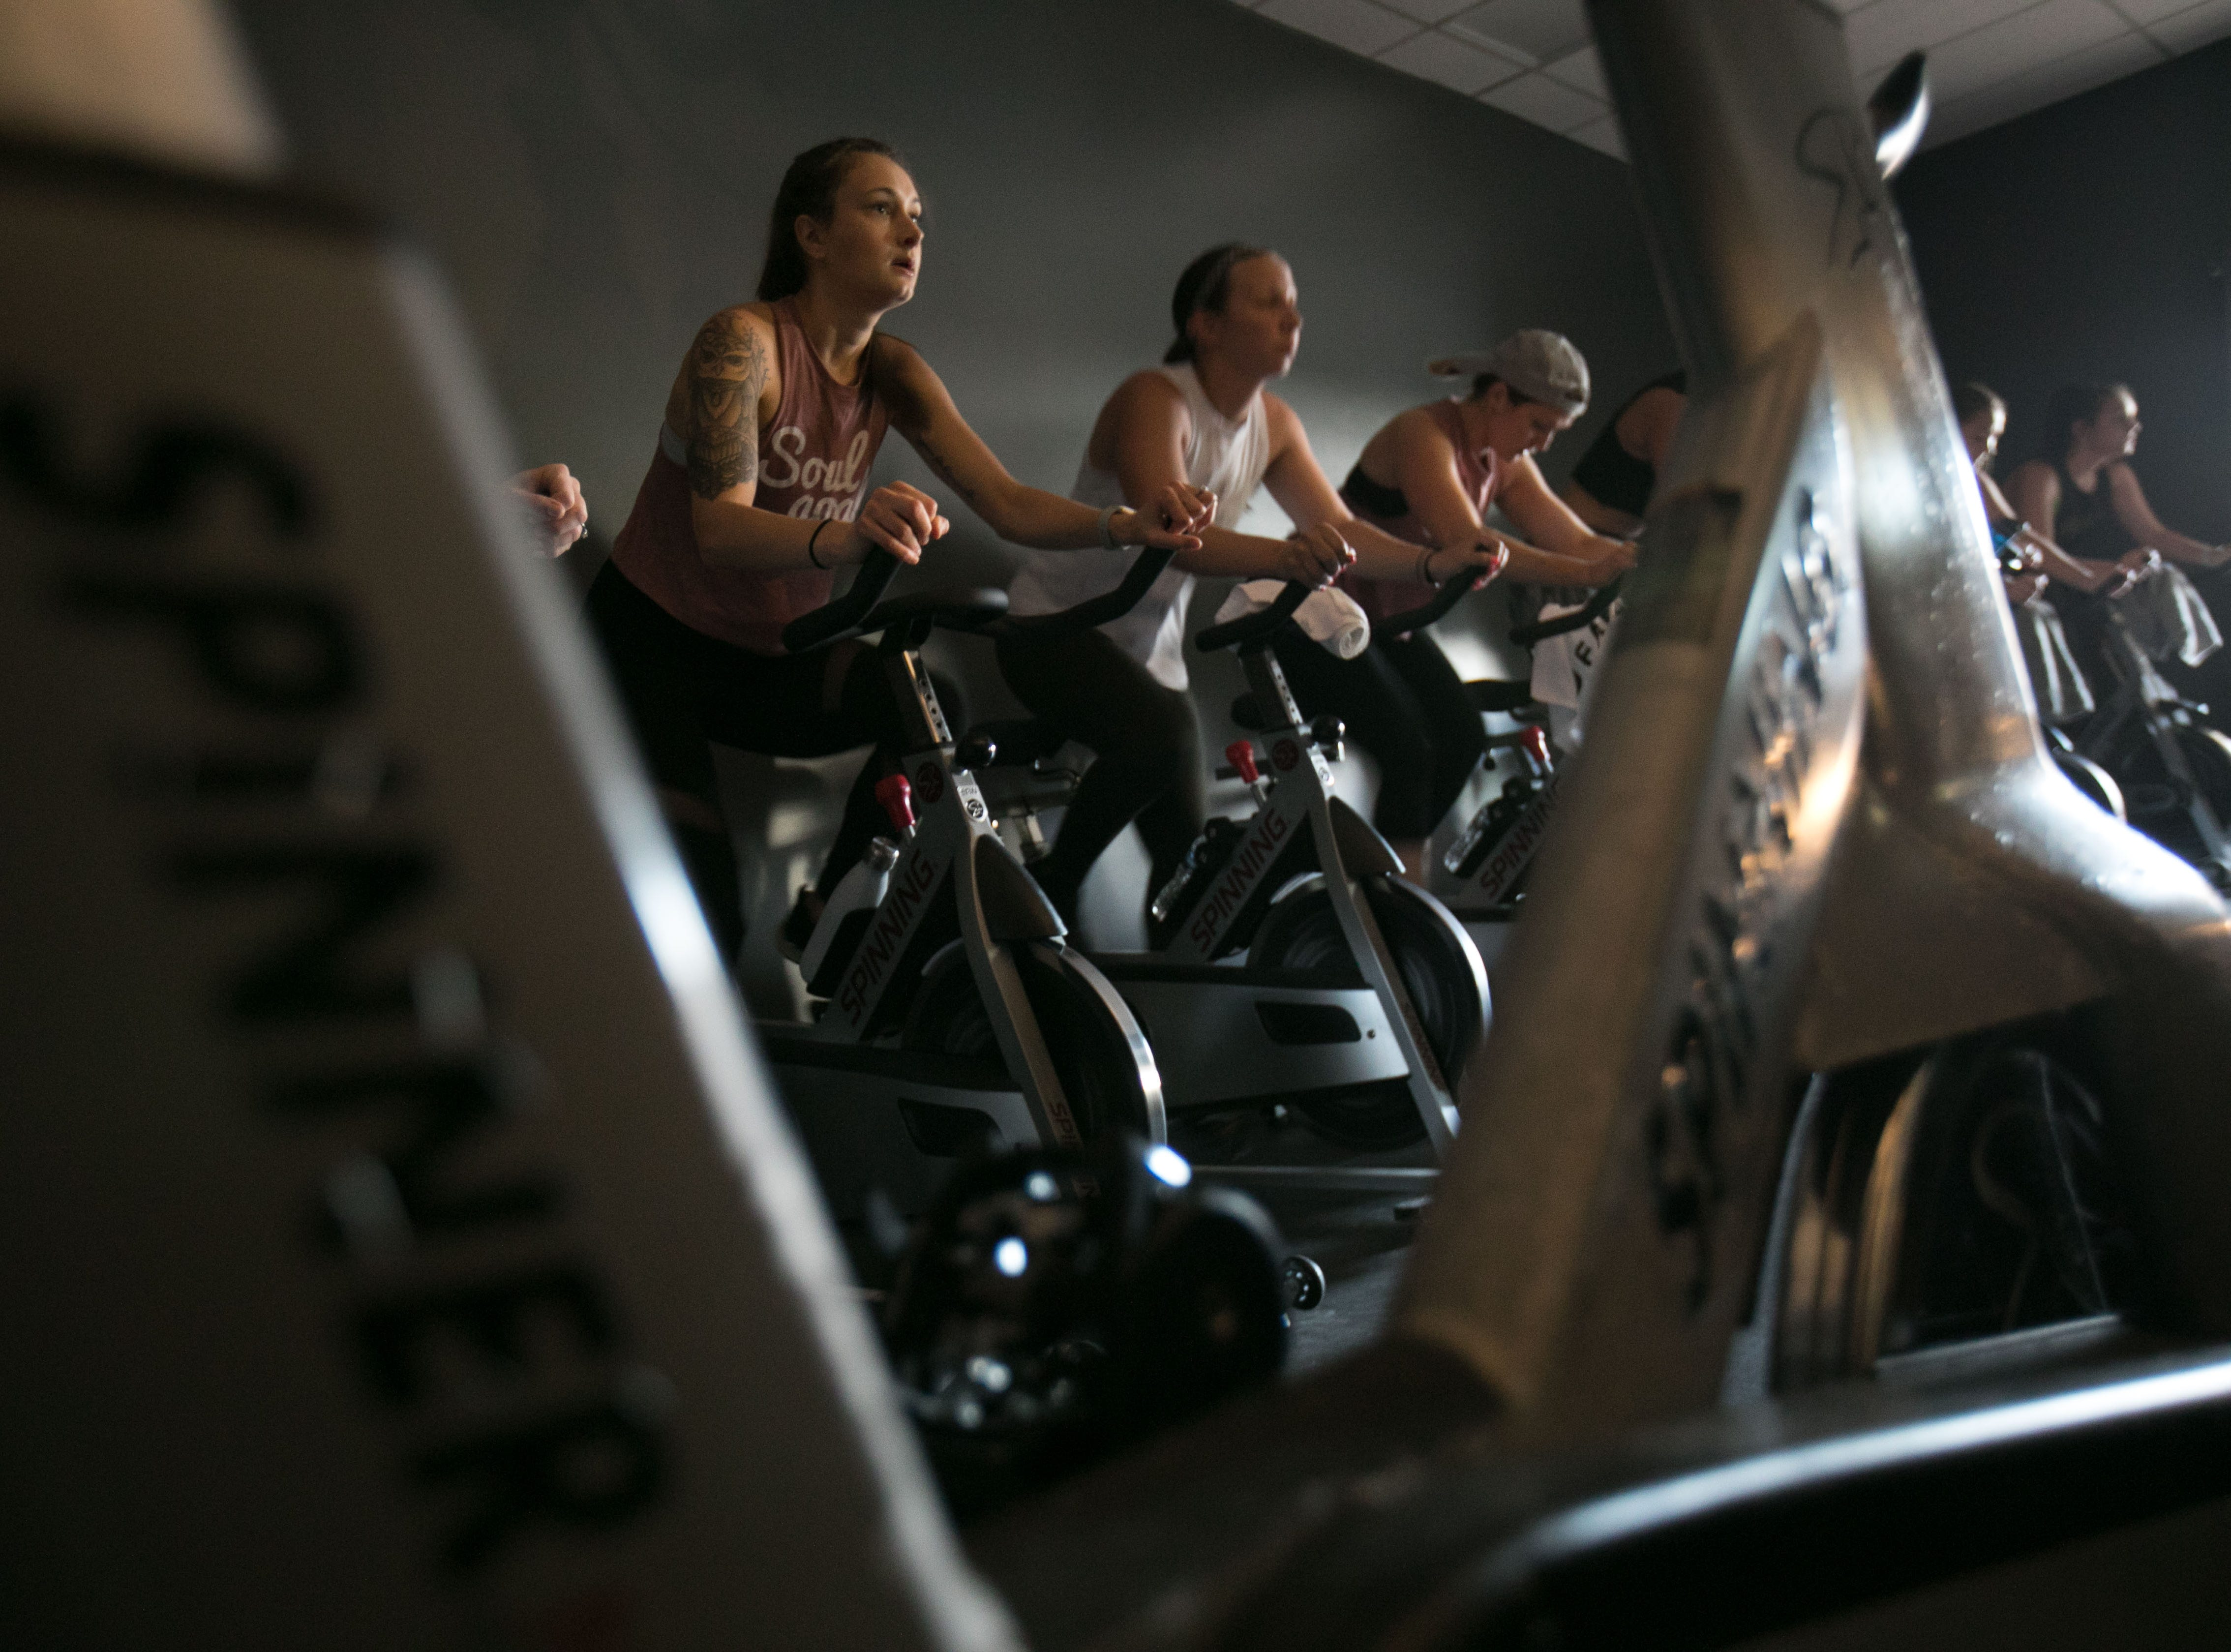 The Stables Spin Studio offers spin classes seven days a week.